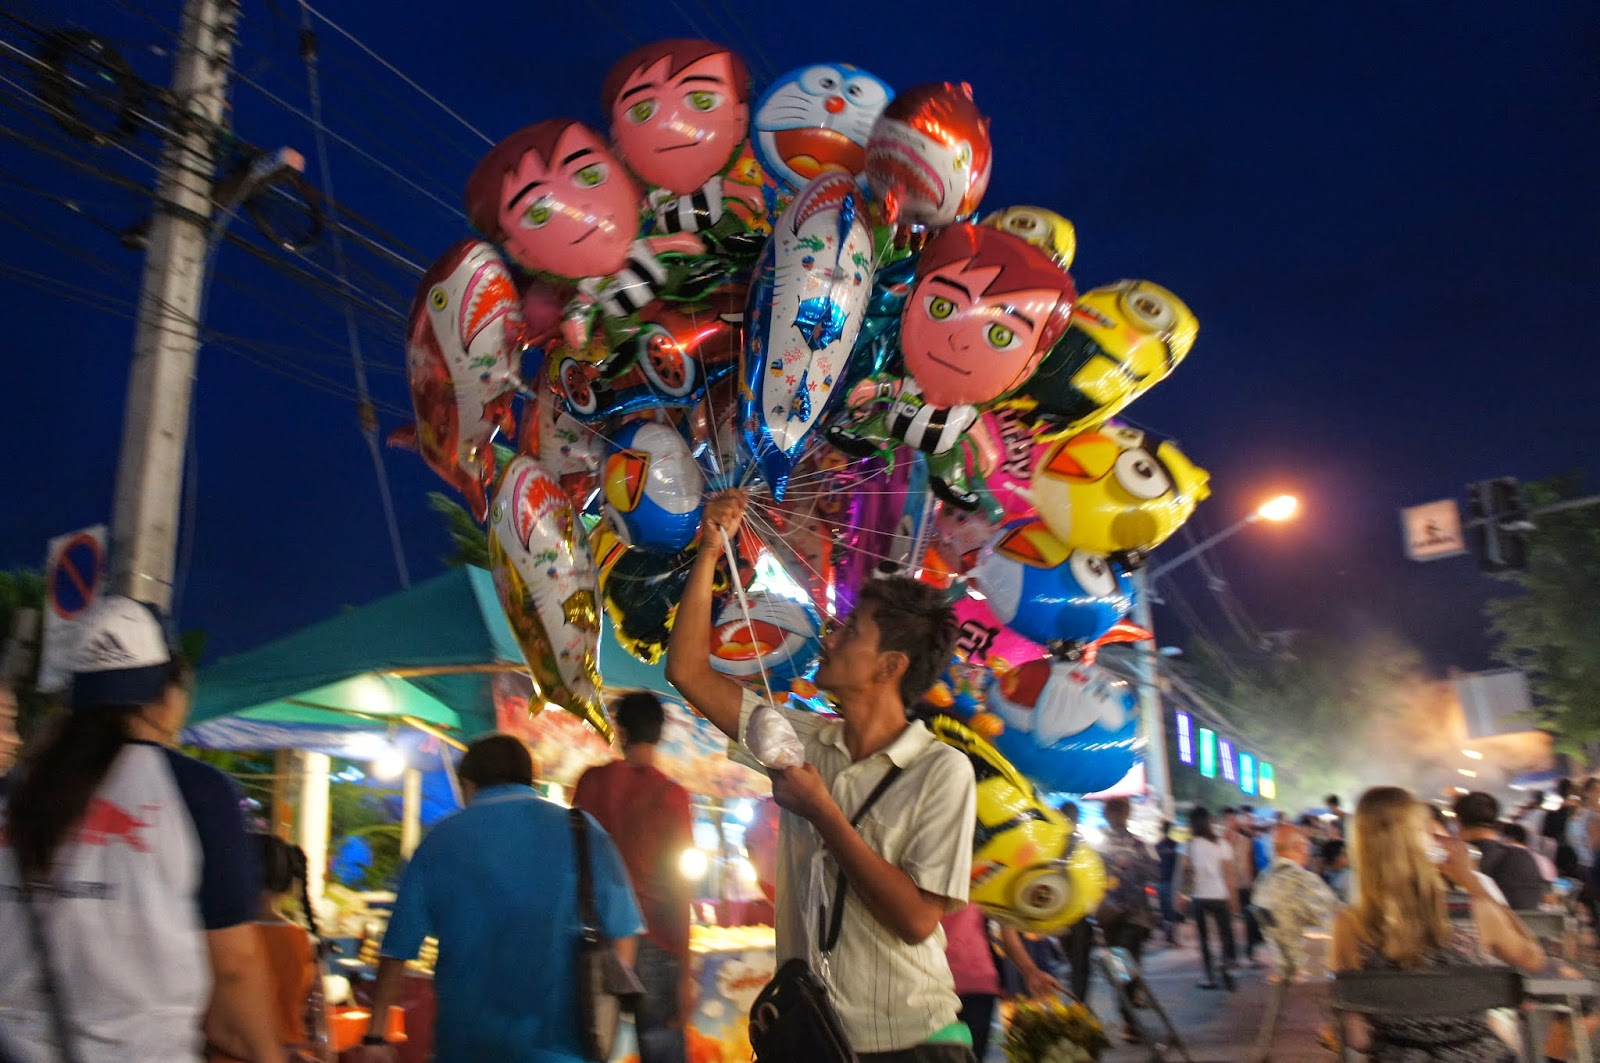 Chiang Mai - There was even a section of carnival rides, games, and balloons